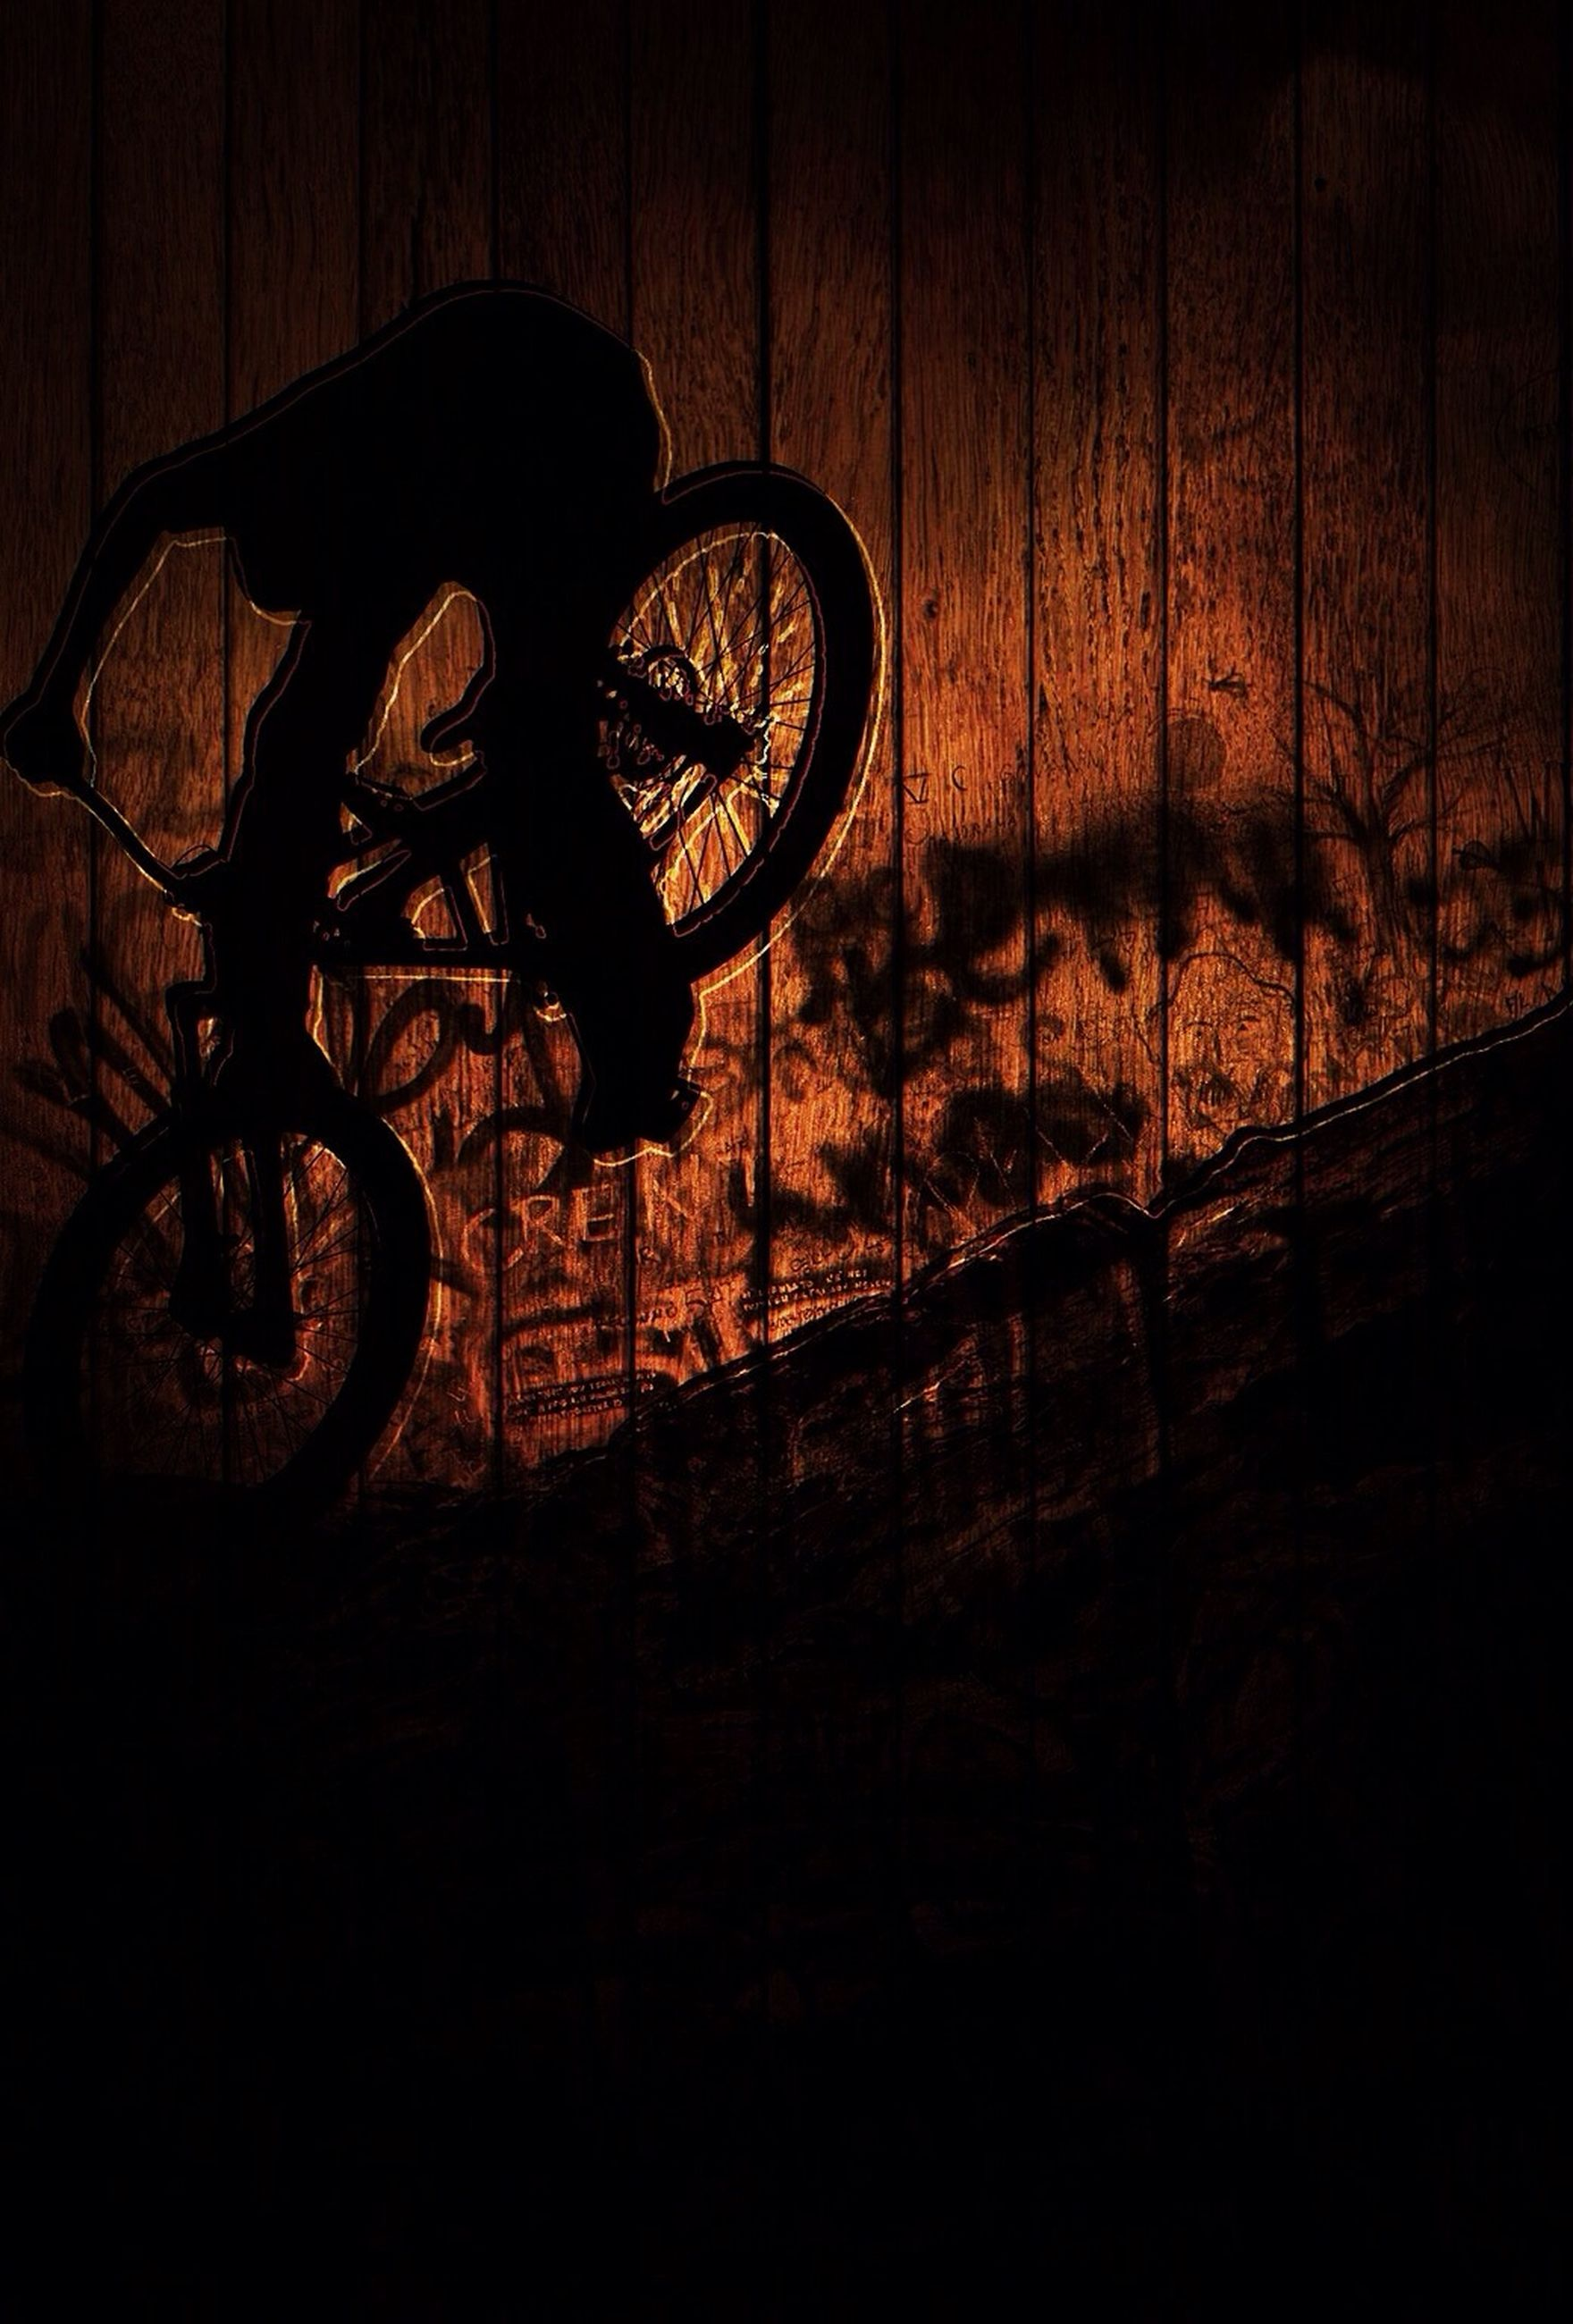 bicycle, silhouette, transportation, land vehicle, mode of transport, shadow, stationary, parking, street, sunlight, parked, outdoors, no people, wall - building feature, sunset, side view, day, leaning, riding